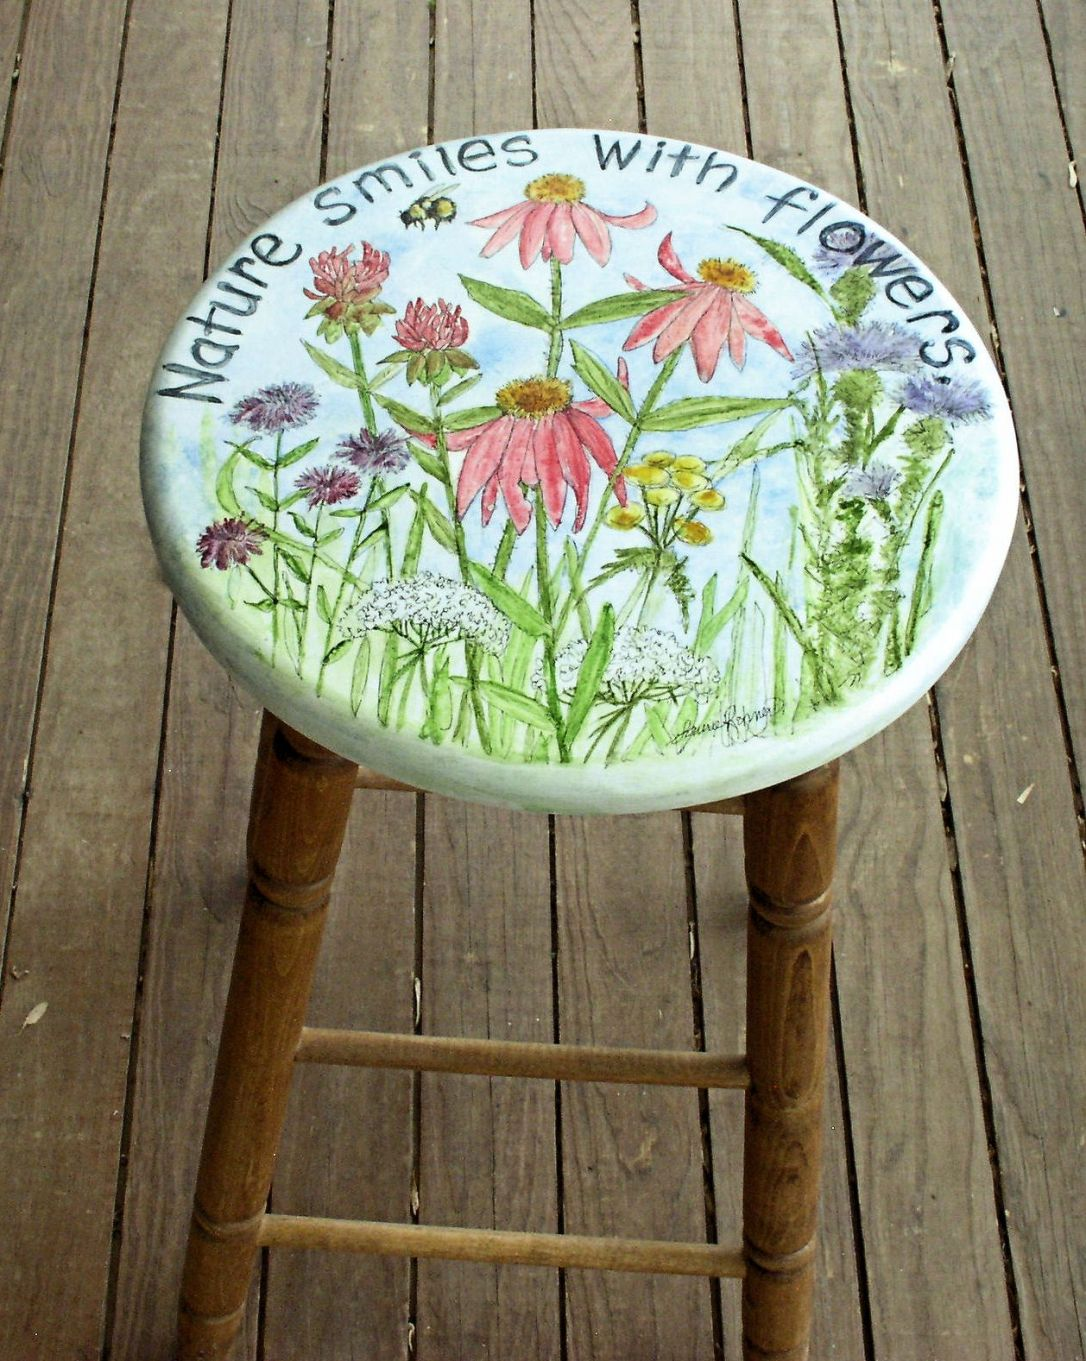 Hand Painted Furniture Garden Flowers with Nature Saying Stool